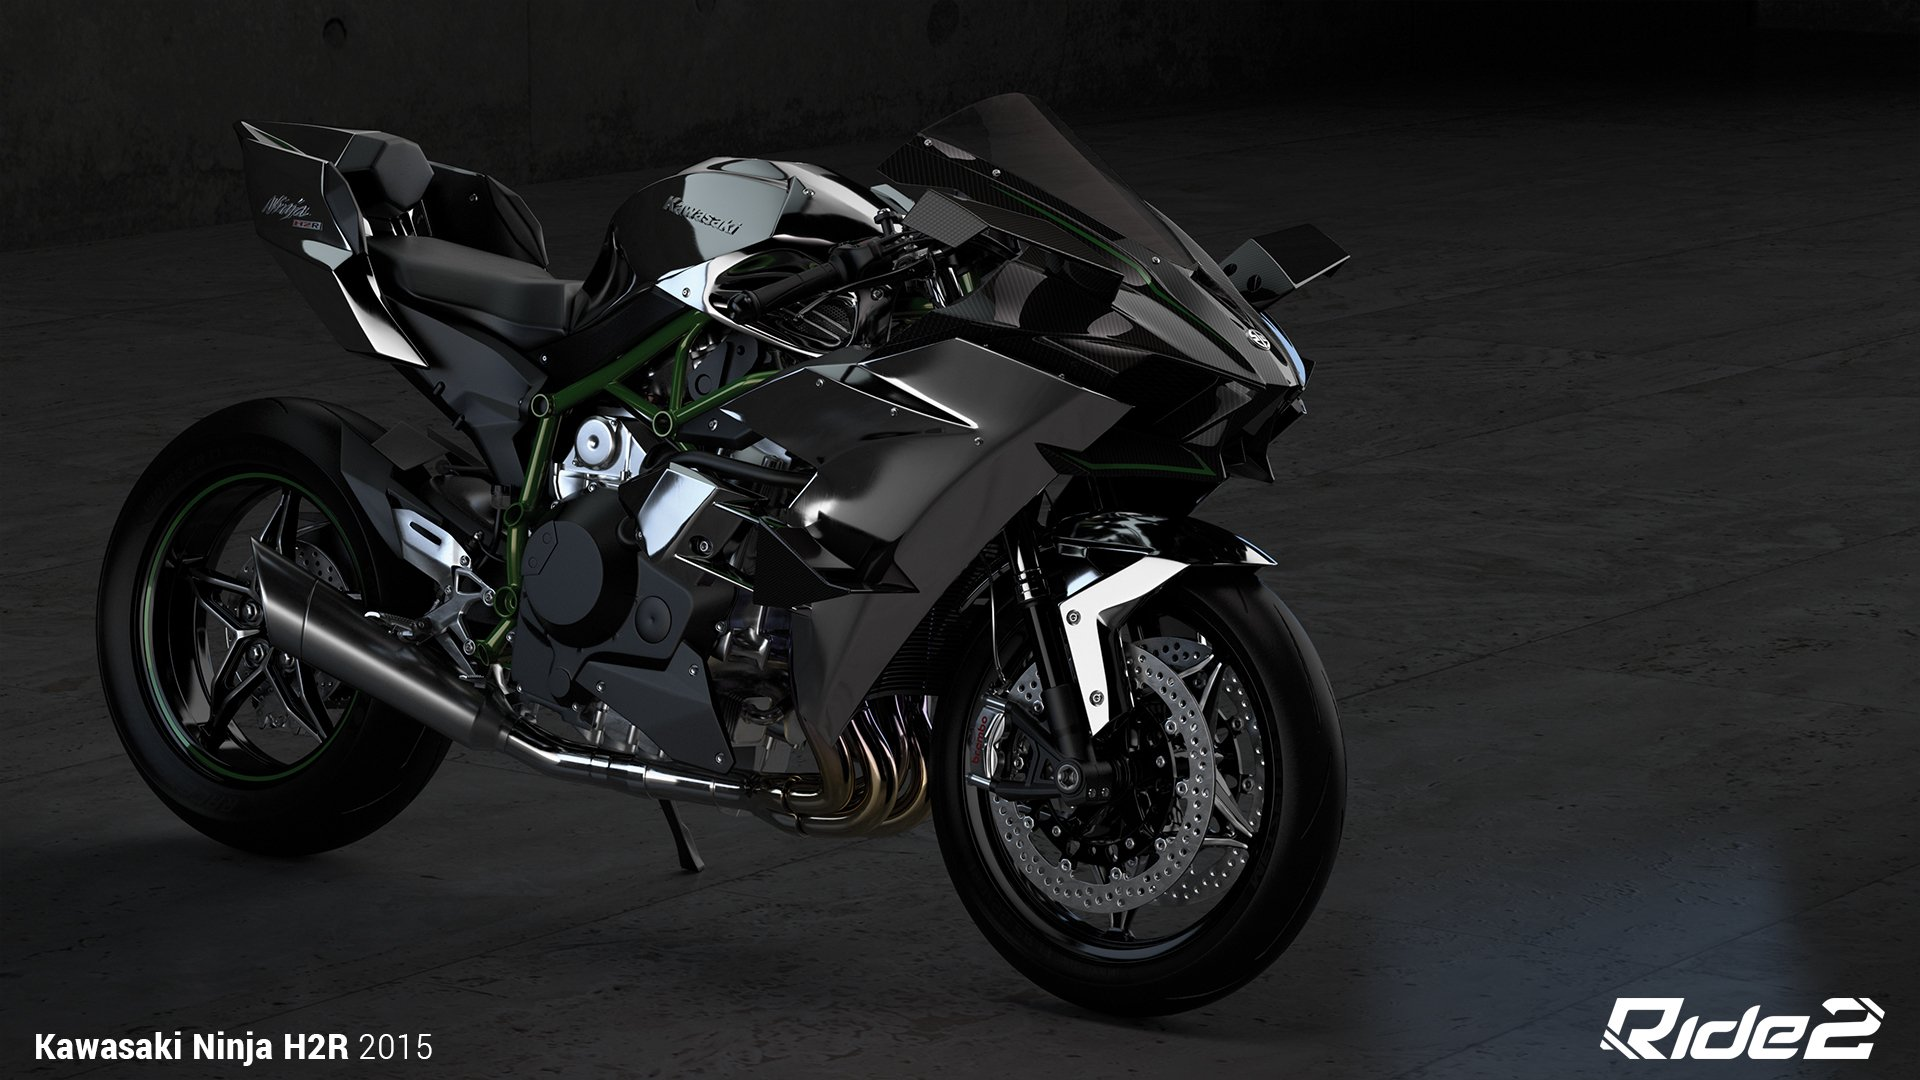 Wallpapers ID727465 Download Next Wallpaper Prev 2015 Kawasaki Ninja H2R